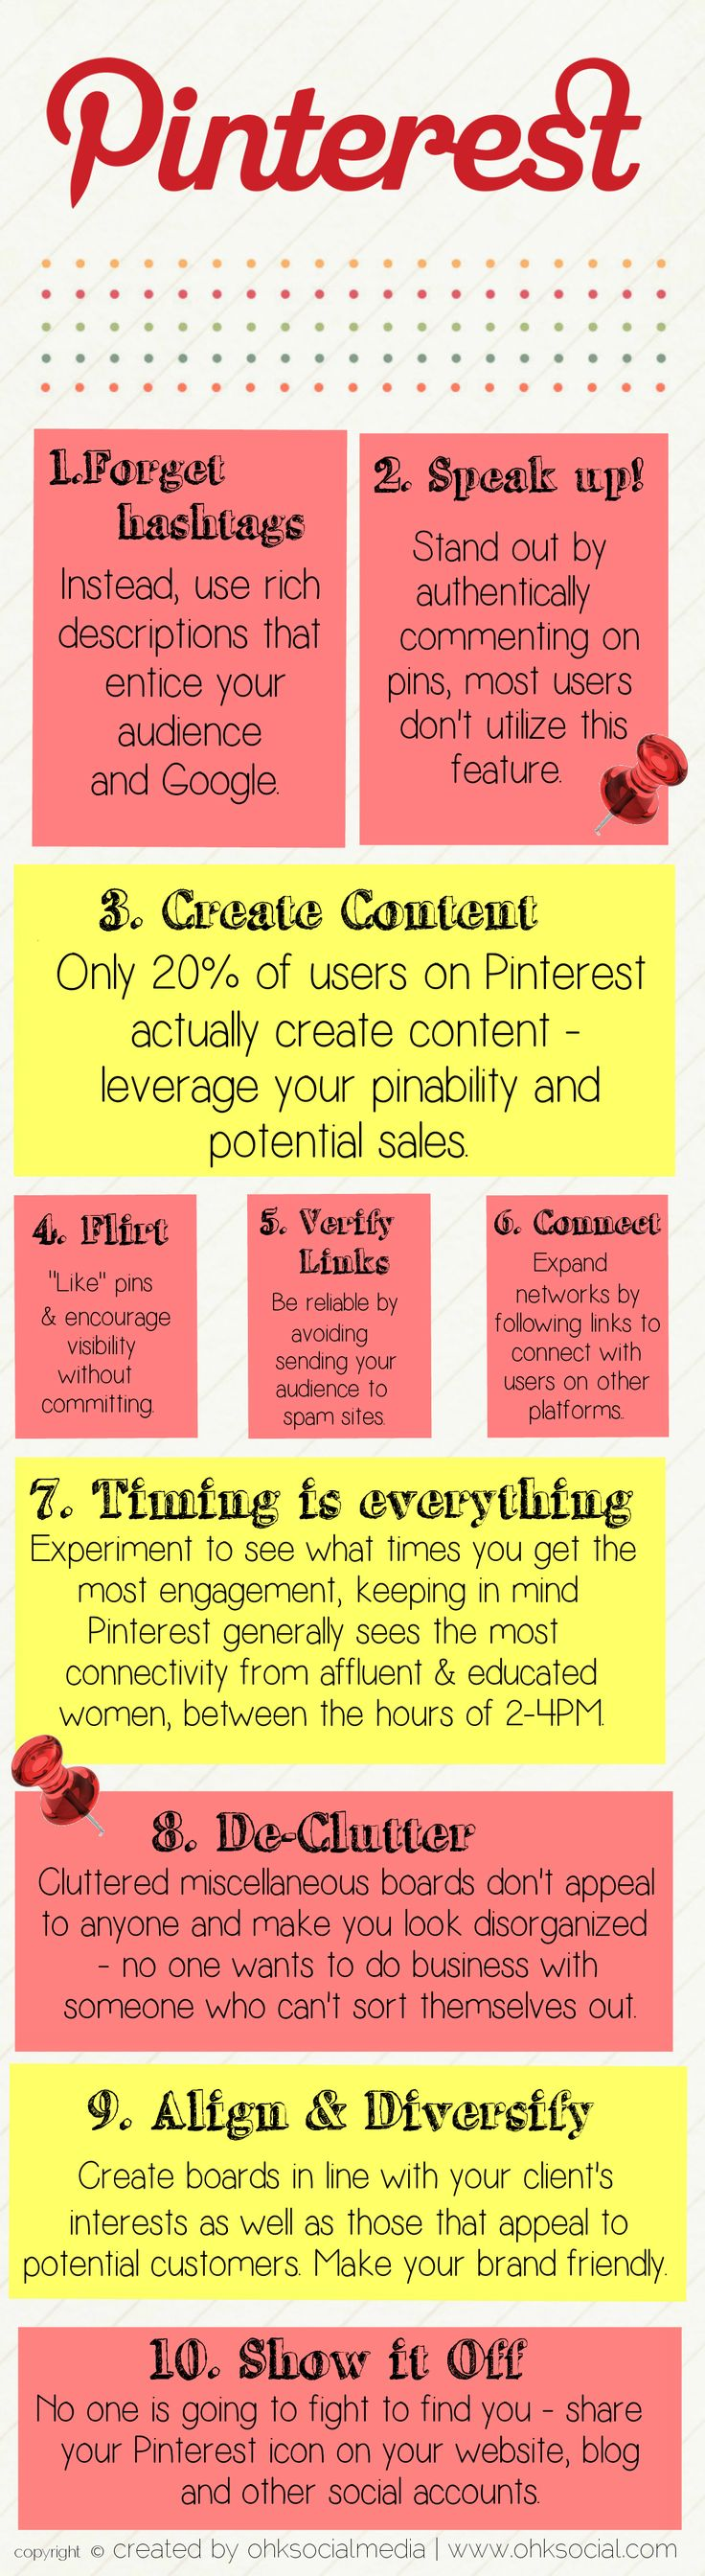 Pinning Down Pinterest: Make Your Brand the Needle in the Haystack (Infographic)